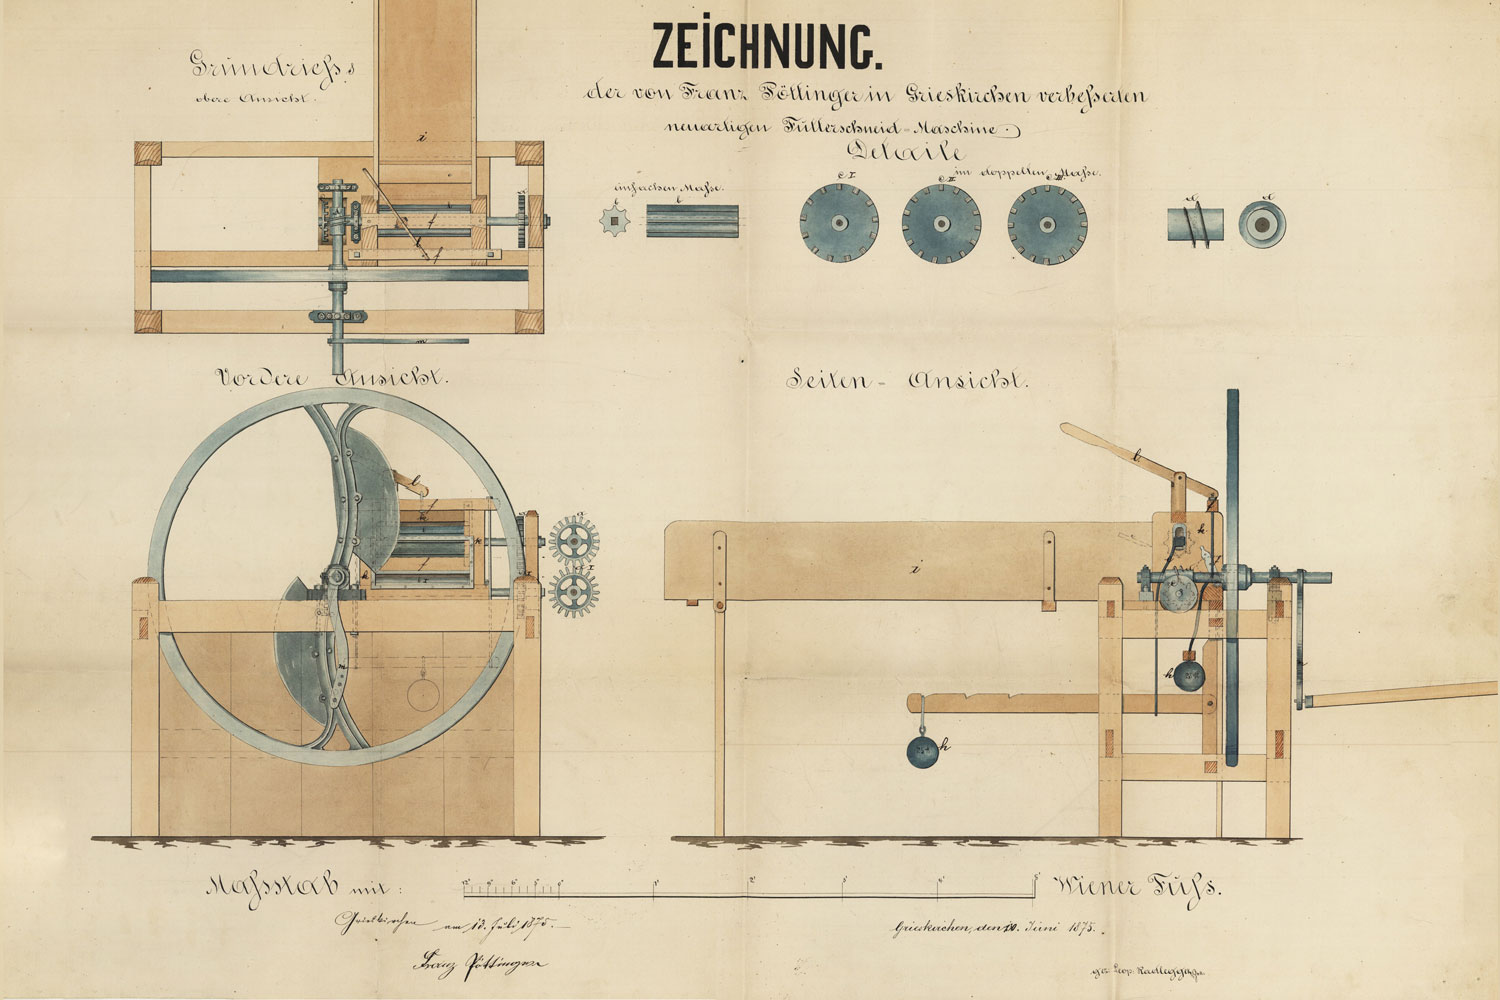 1875: The first patent